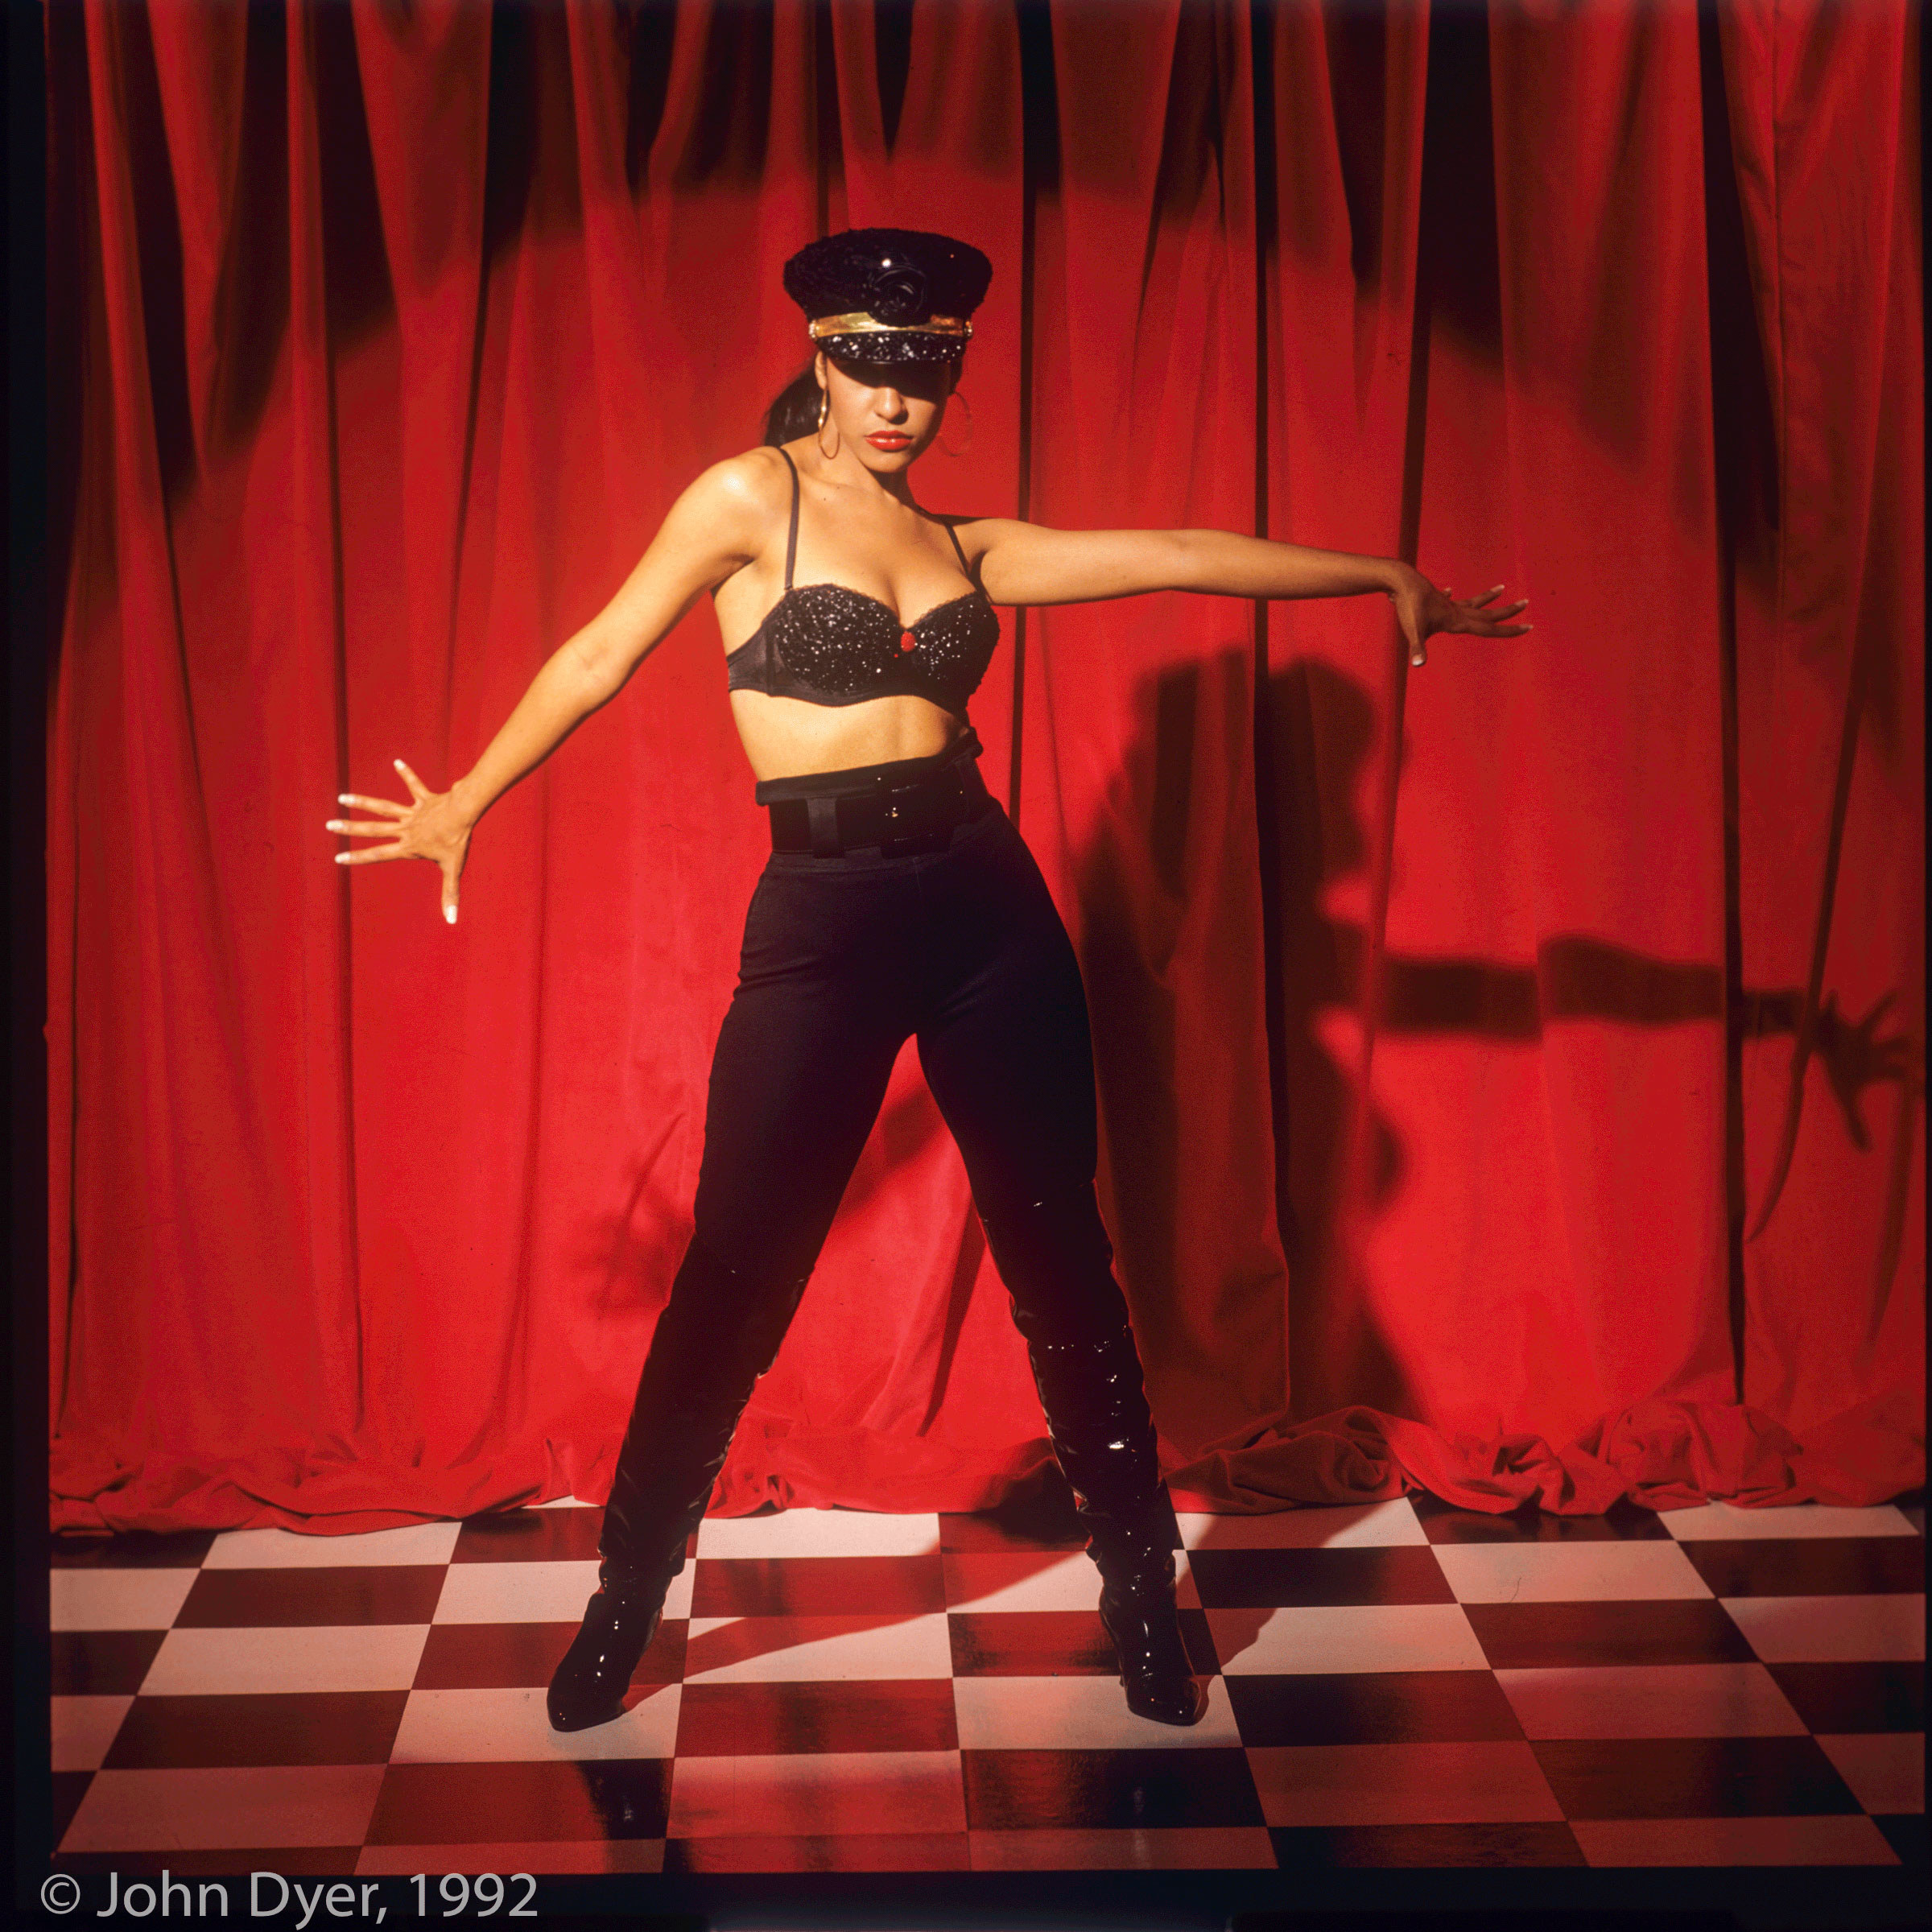 selena quintanilla posing for the camera with her hands out